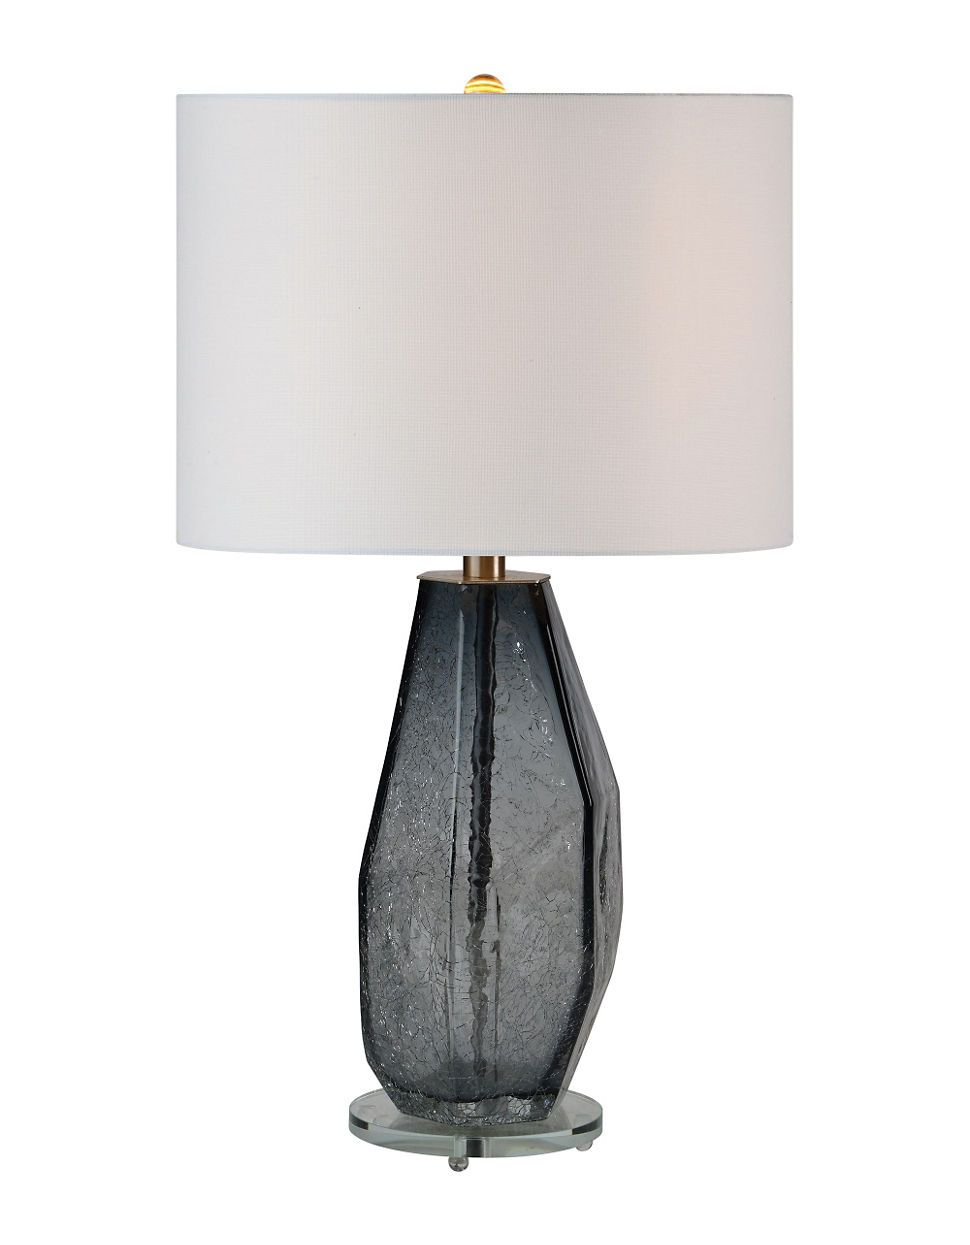 Serengeti Table Lamp | Light switches, Contemporary design and ...